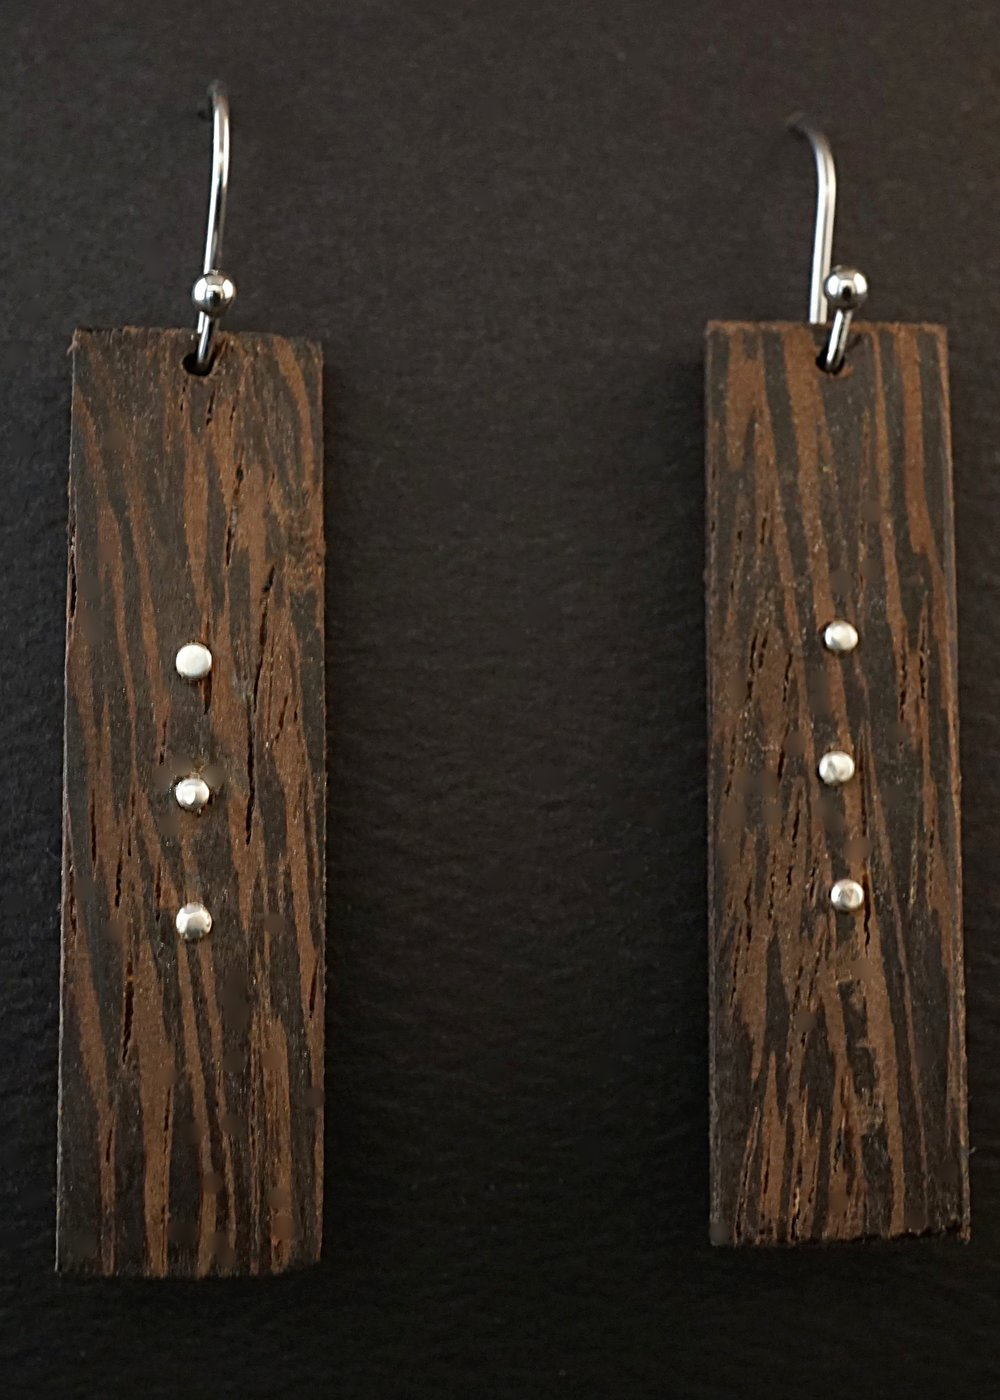 Wenge wood and sterling silver earrings